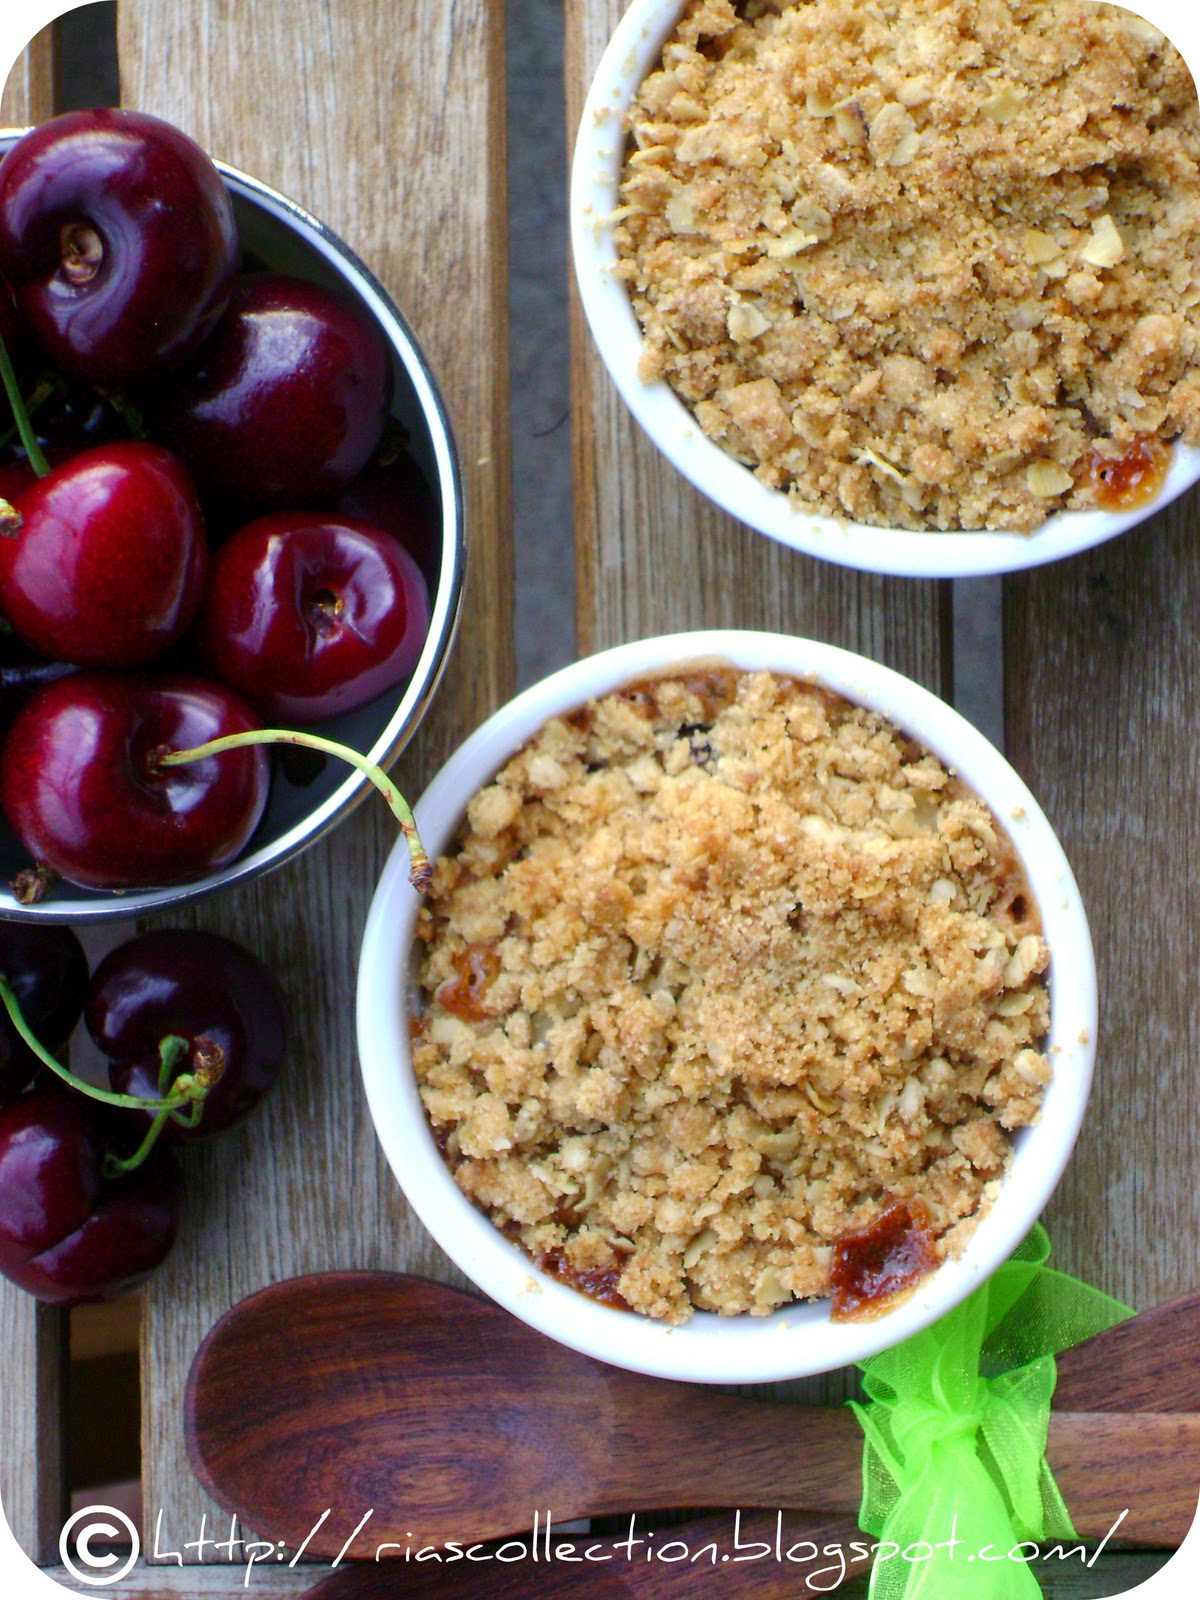 Ria's Collection: CHERRY CRUMBLE